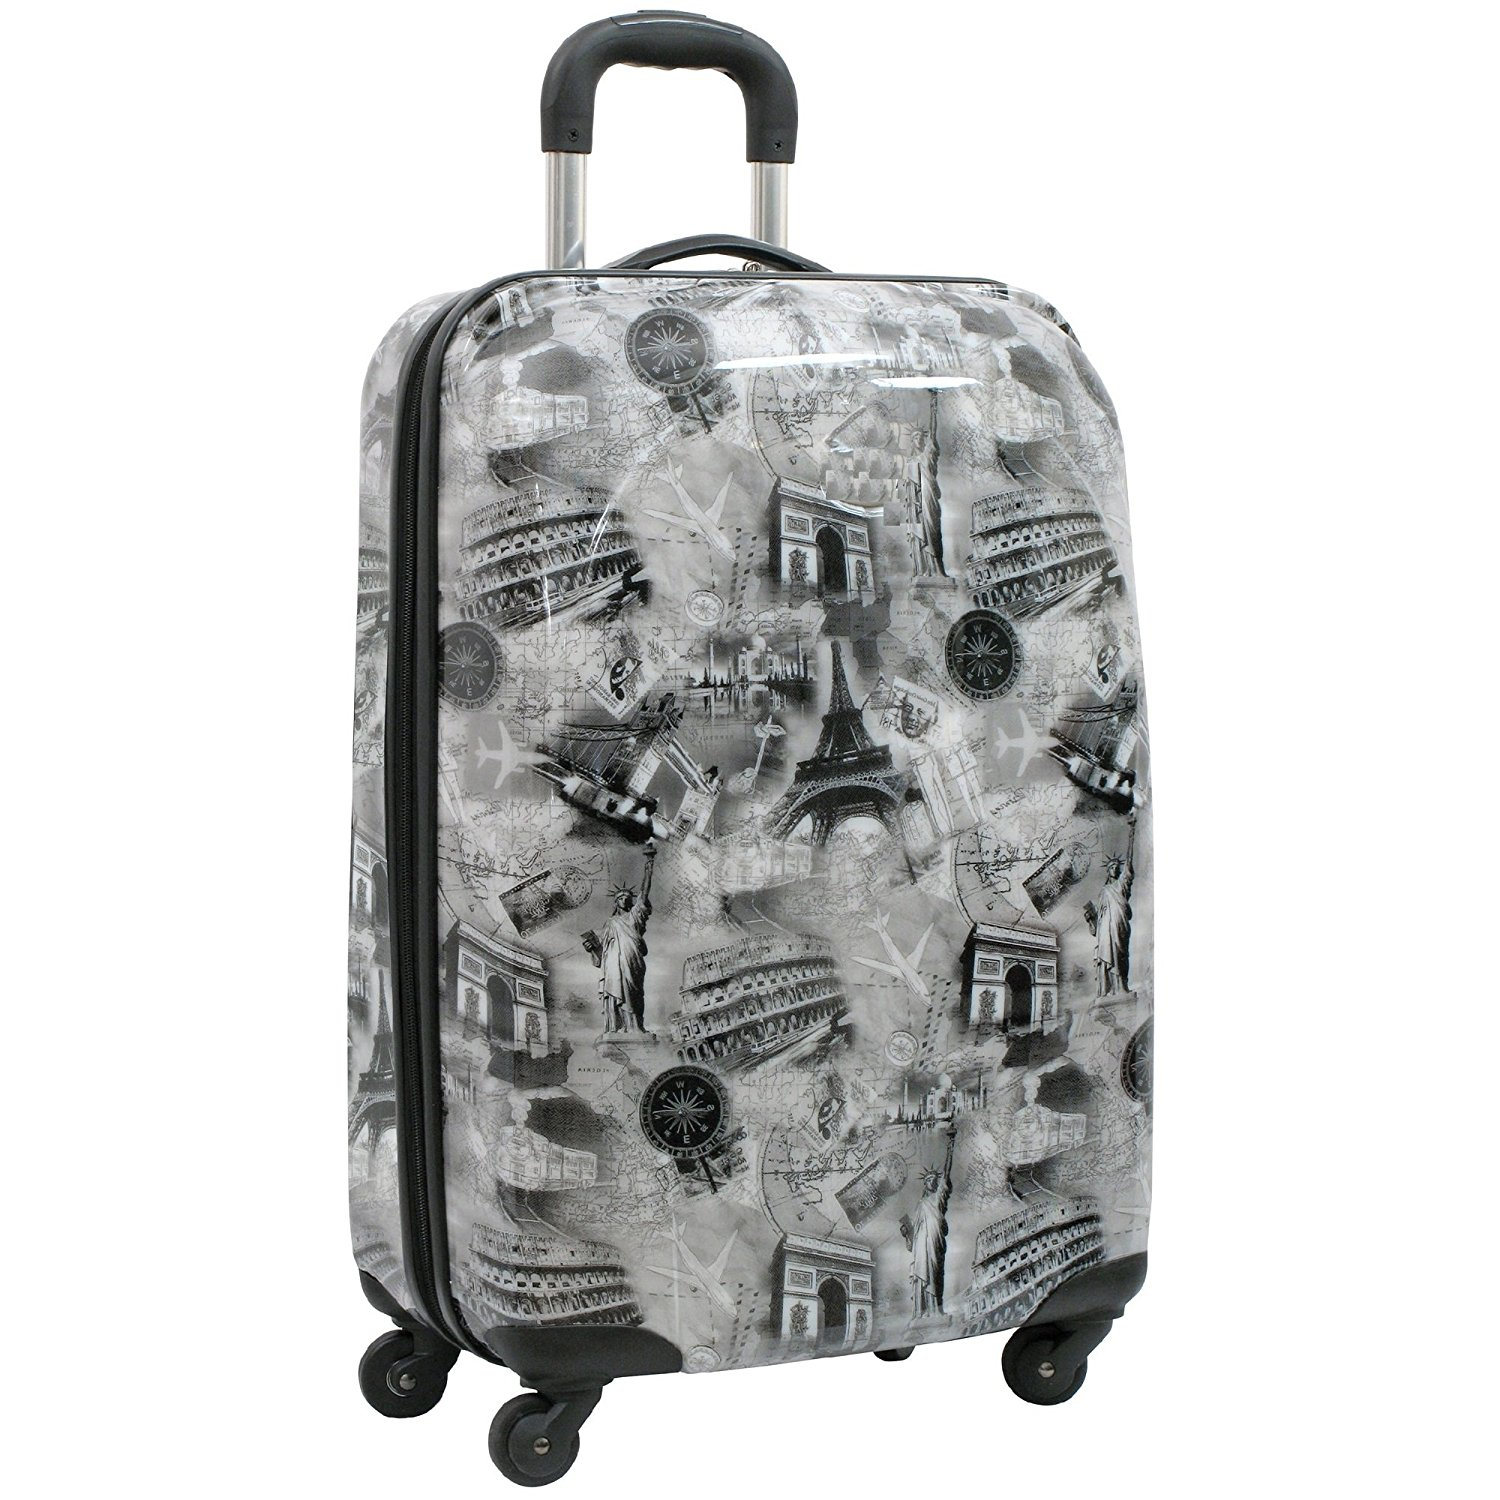 Simple Brown Leopard Print Traveler Lightweight Rotating Luggage Protector Case Can Carry With You Can Expand Travel Bag Trolley Rolling Luggage Protector Case